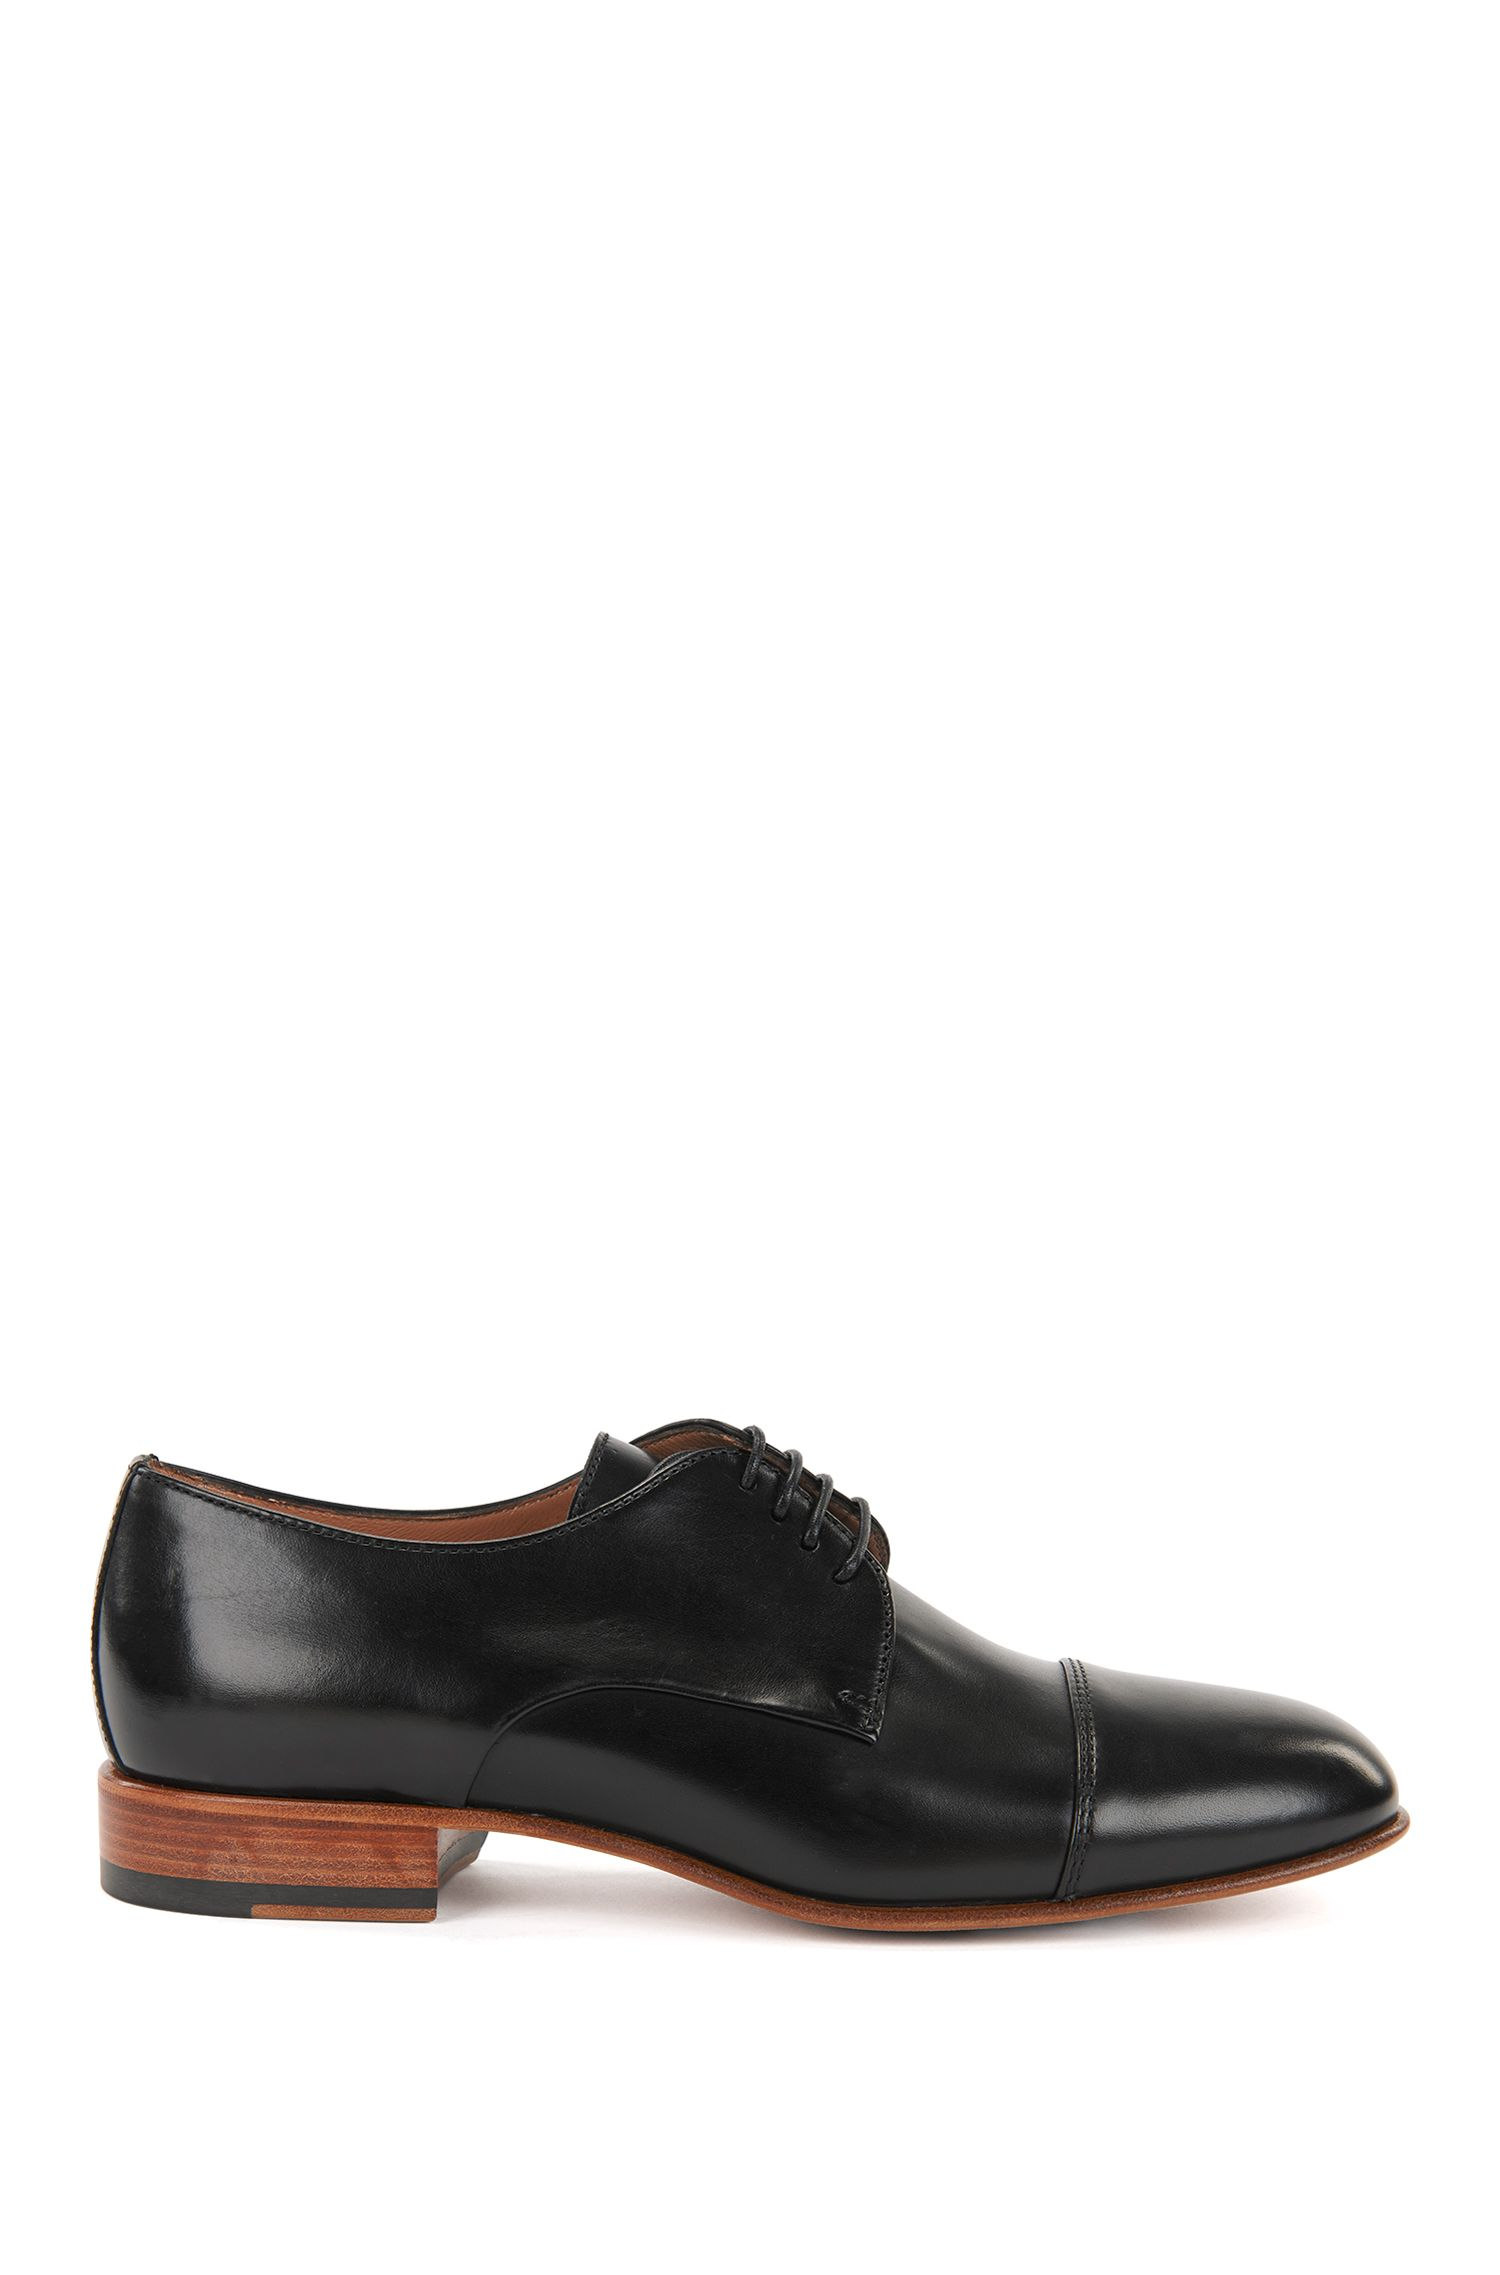 Derby shoes in Italian calf leather